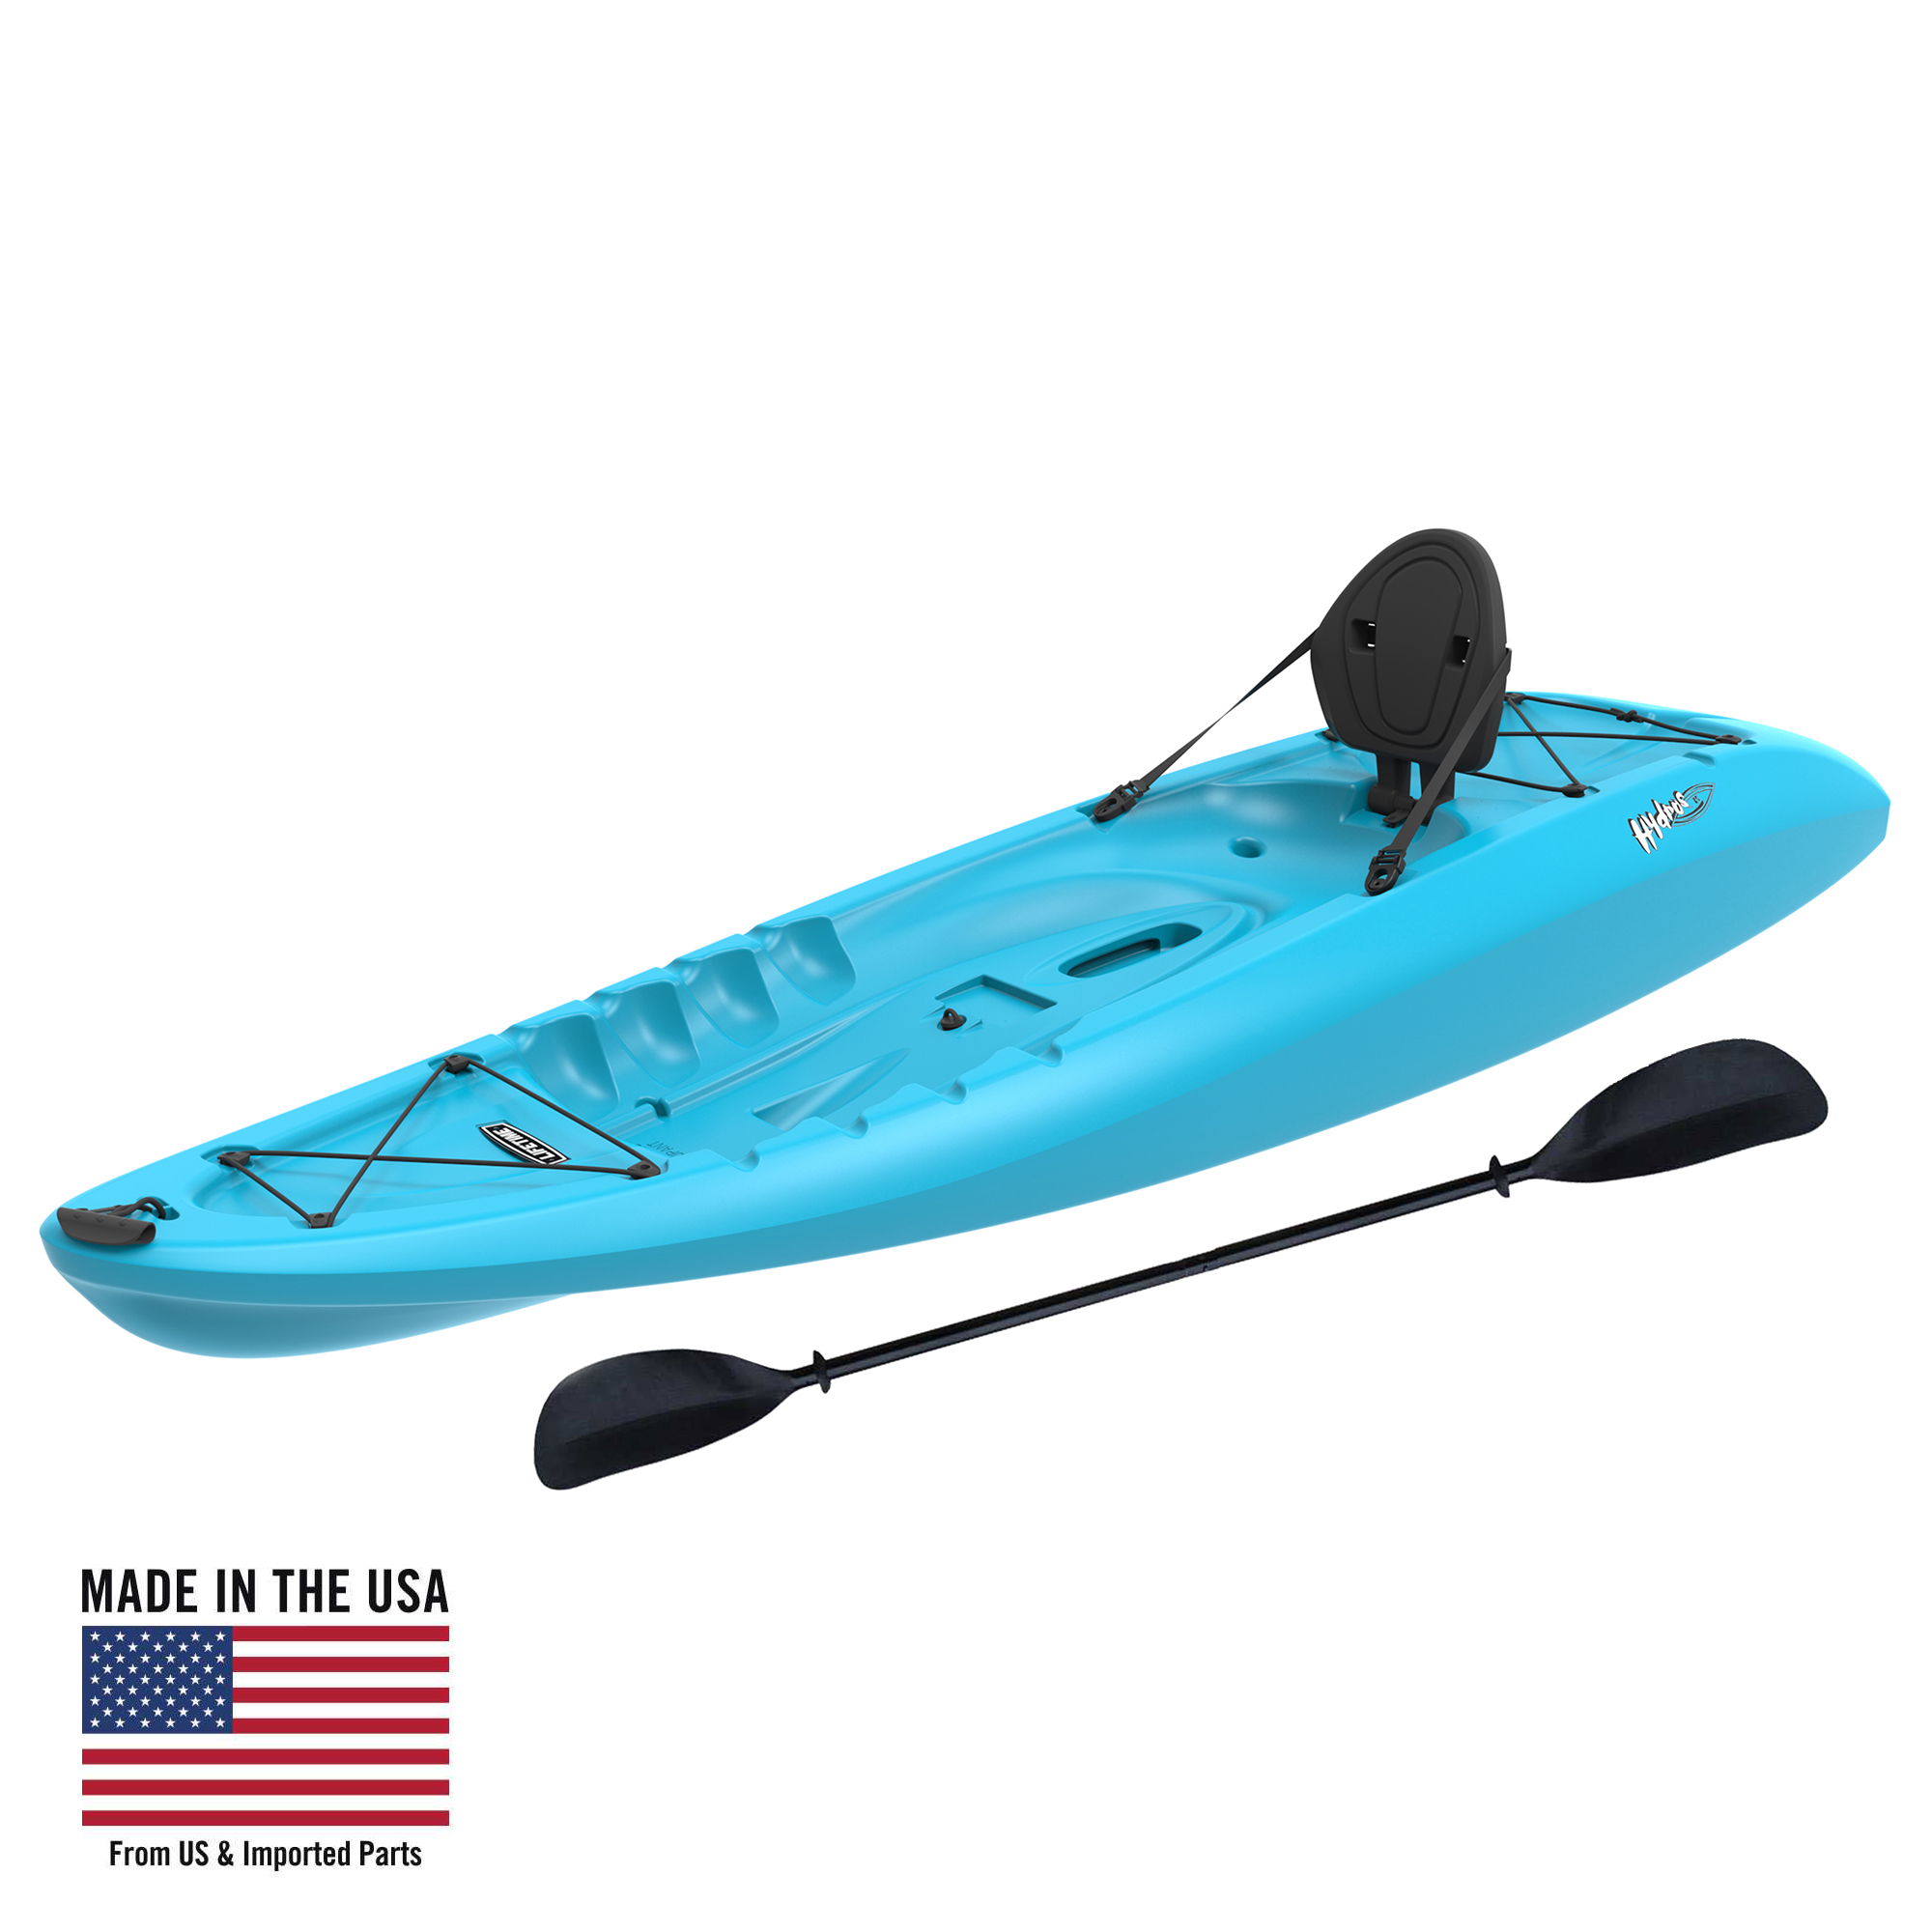 Water Sports Lovely Airhead Lightweight 2-person Lake River Pond Fishing Inflatable Boat Ahib-2